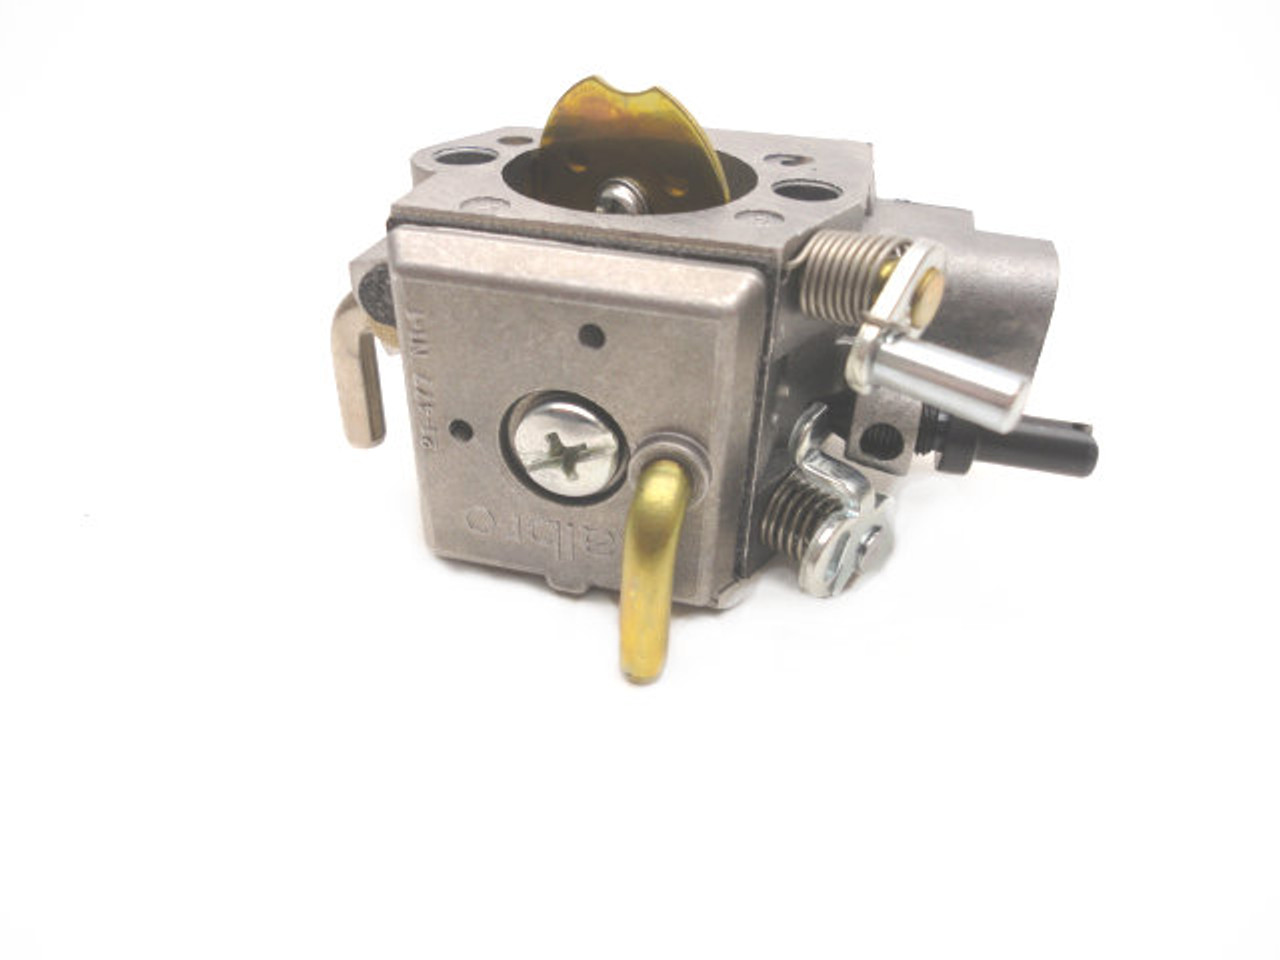 ZAMA Carburetor for STIHL 029 039 MS 290 MS 310 MS 390 Chainsaws Replaces OEM 1127 120 0605